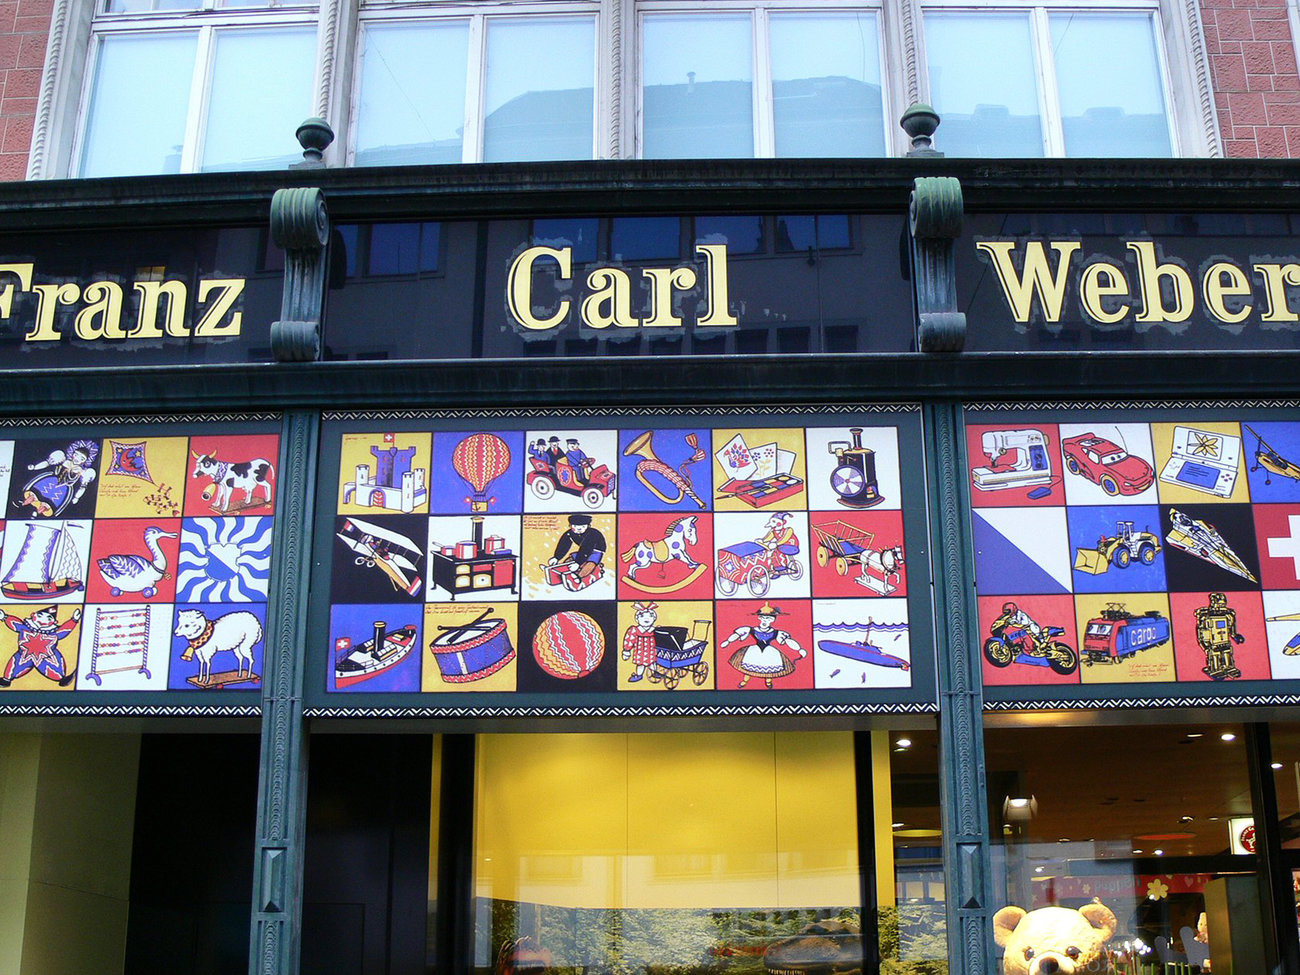 Franz Carl Weber Toy Shop in Zurich